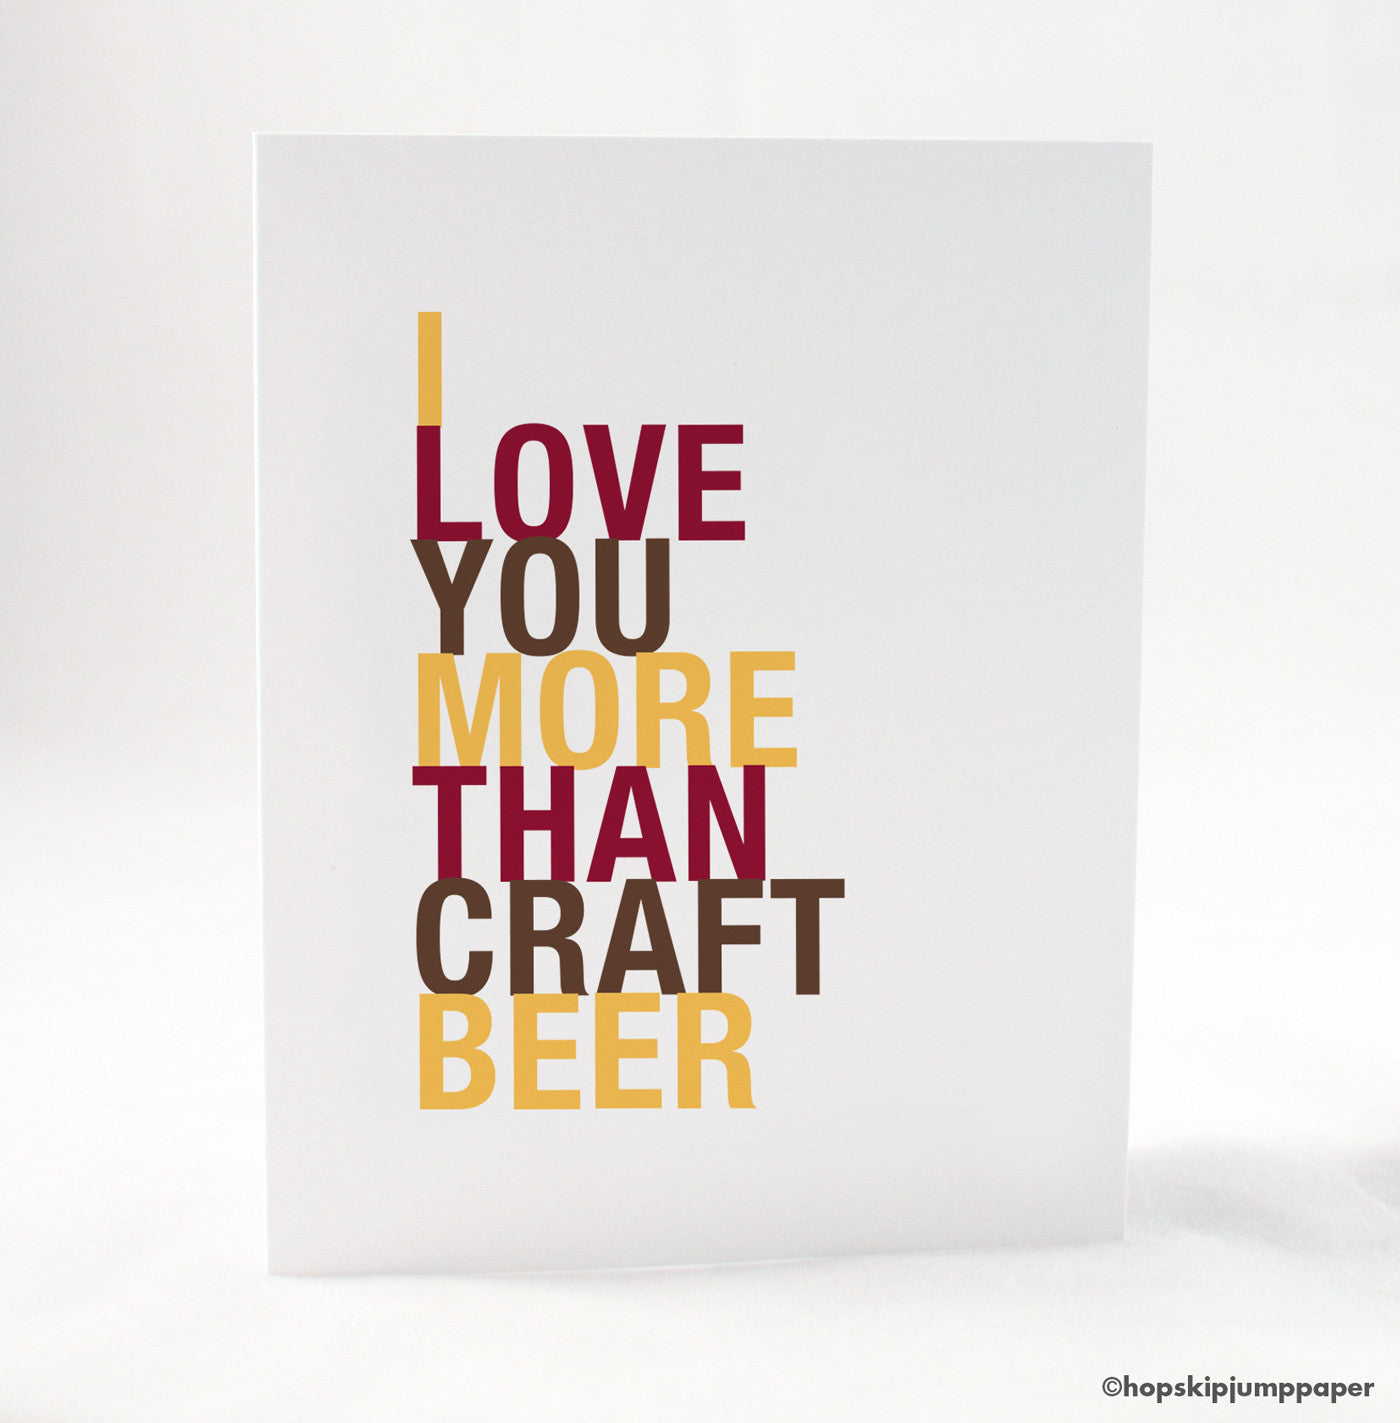 Found! The Perfect Gift for Craft Beer Lovers